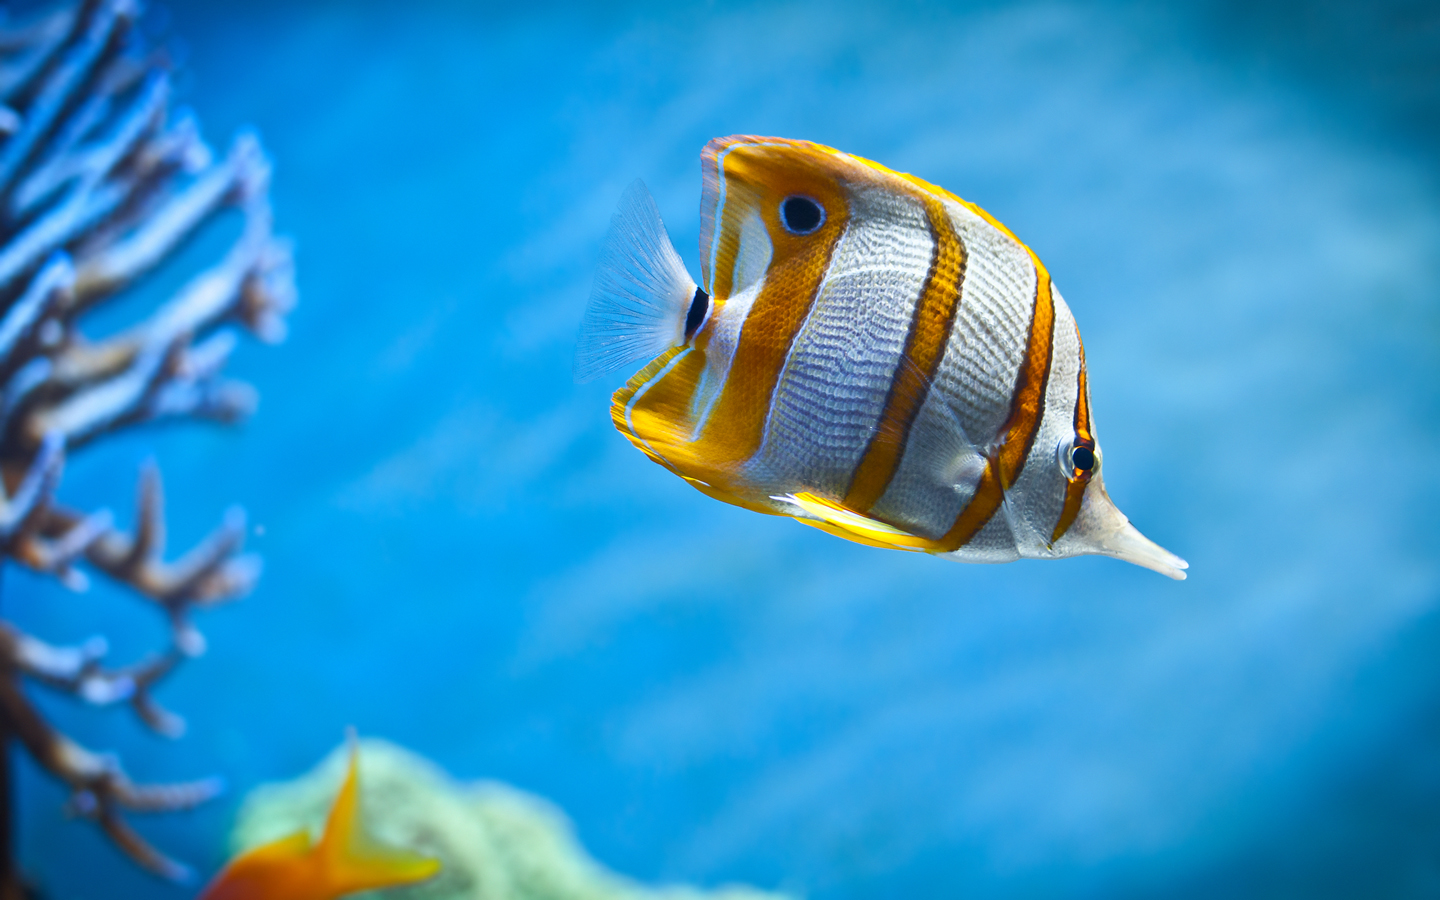 HD WallPaPer Fish Full HD Wallpaper 1440x900